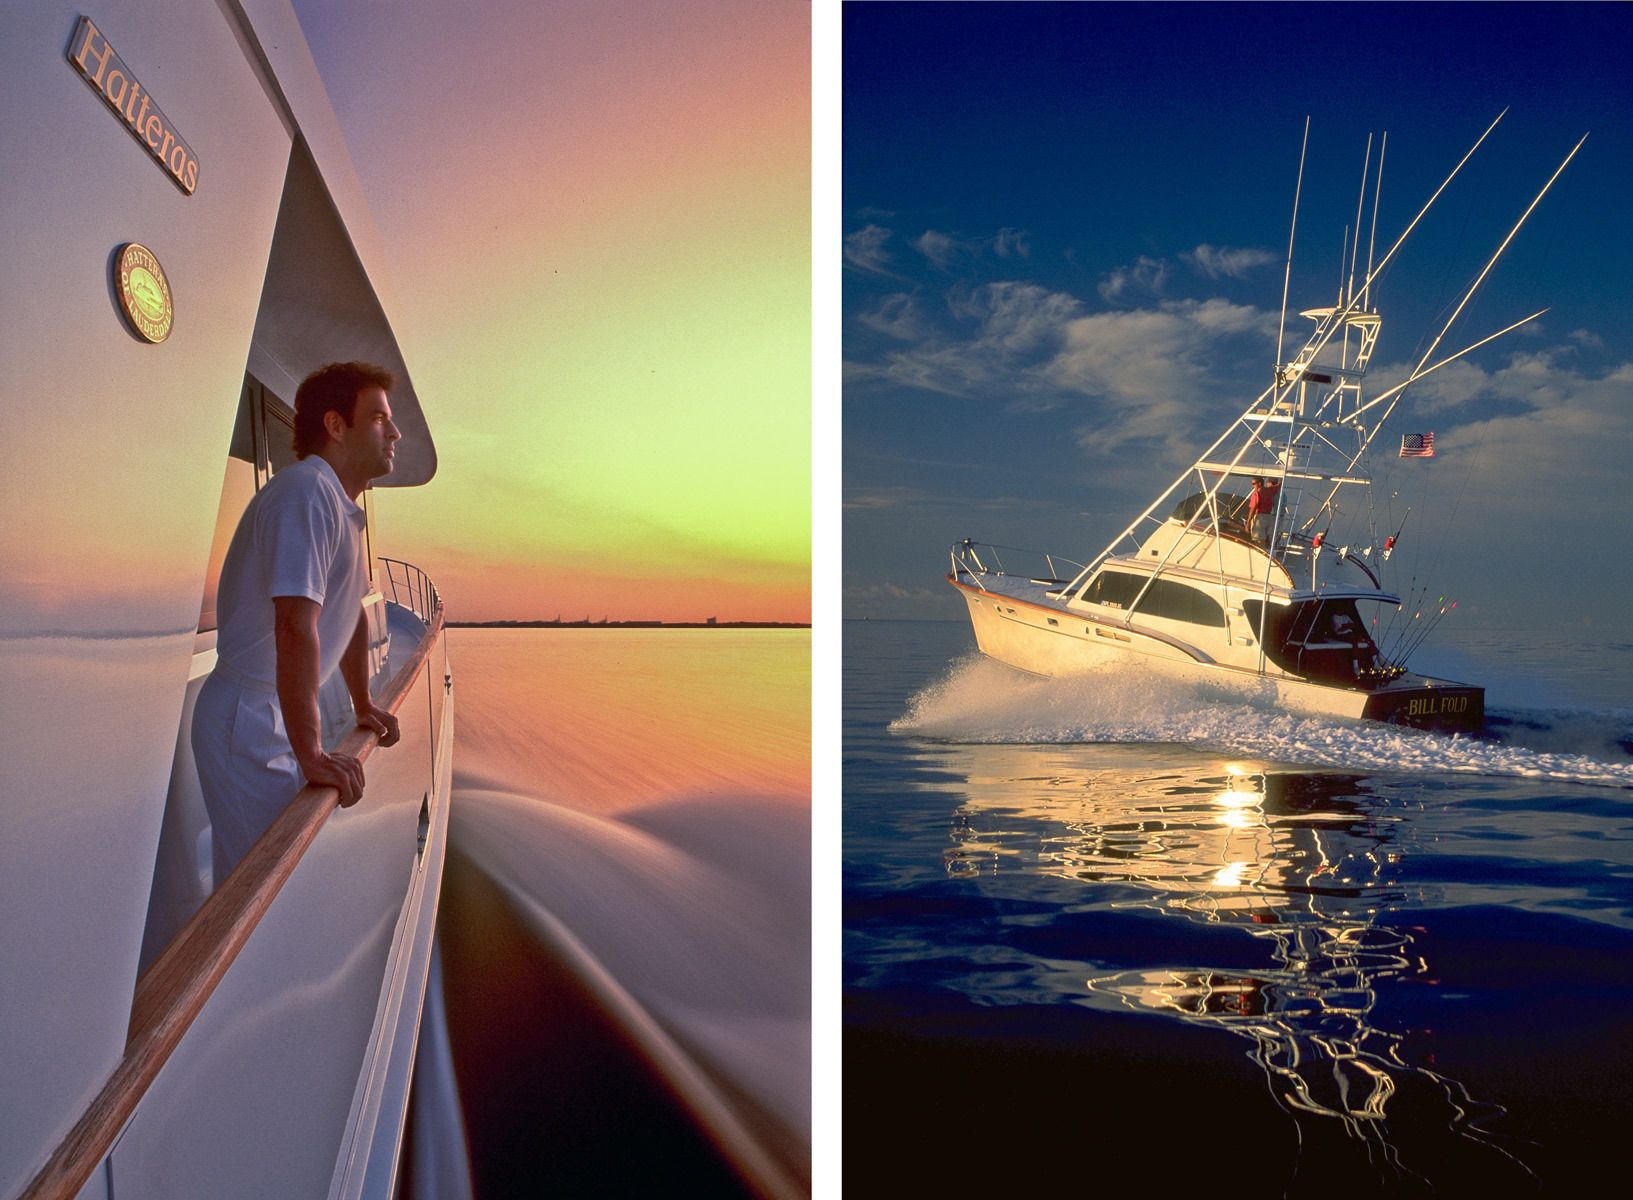 Hatteras and Rybovich